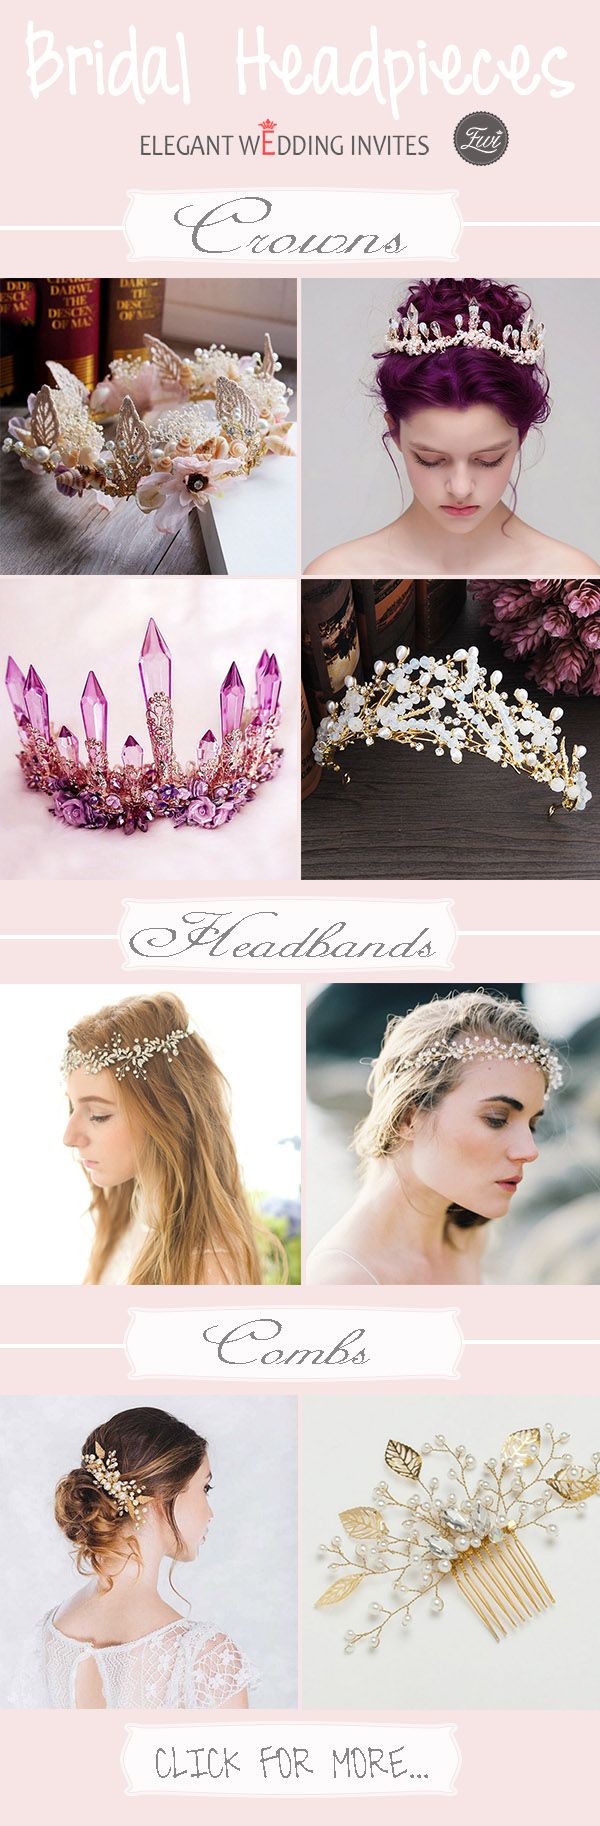 bridal headpieces collection from Elegant Wedding Invites